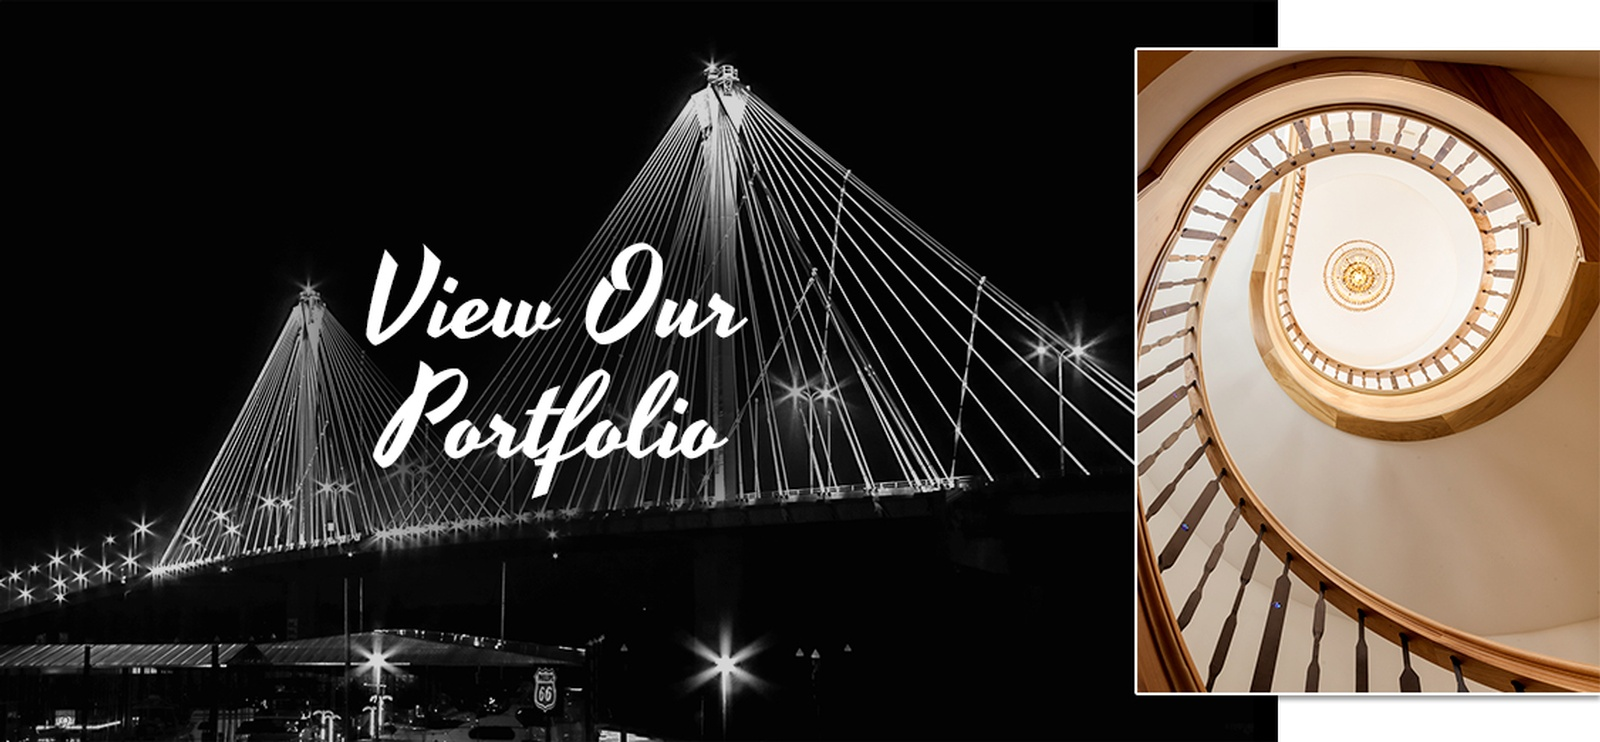 View our Portfolio - Photography Services Maryland Heights by Coblitz Photographic Arts